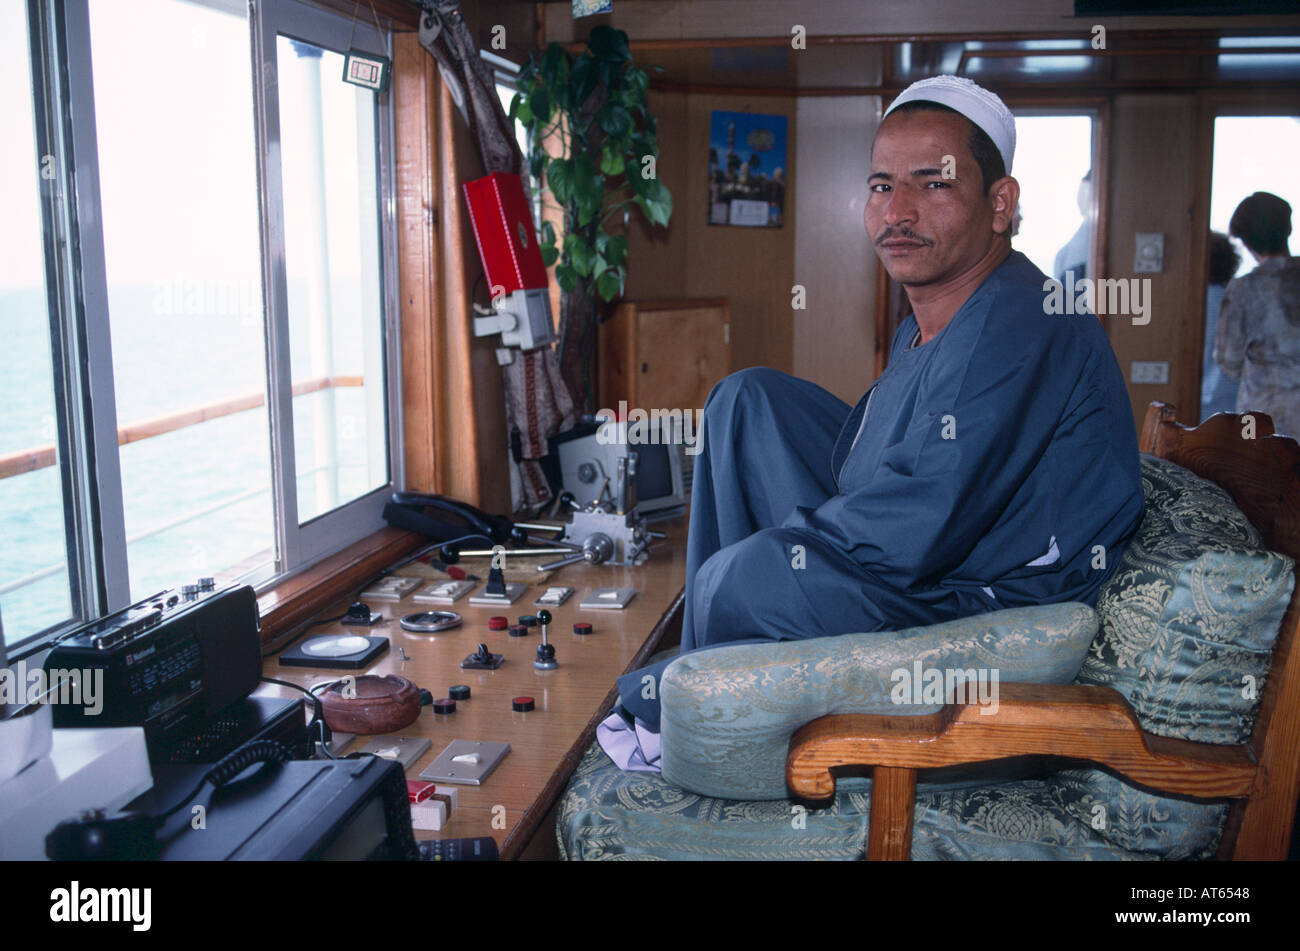 The Captian of MS Prince Abbas, a cruiser on Lake Nasser, Egypt. Upper Egypt / Nubia, Egypt. - Stock Image